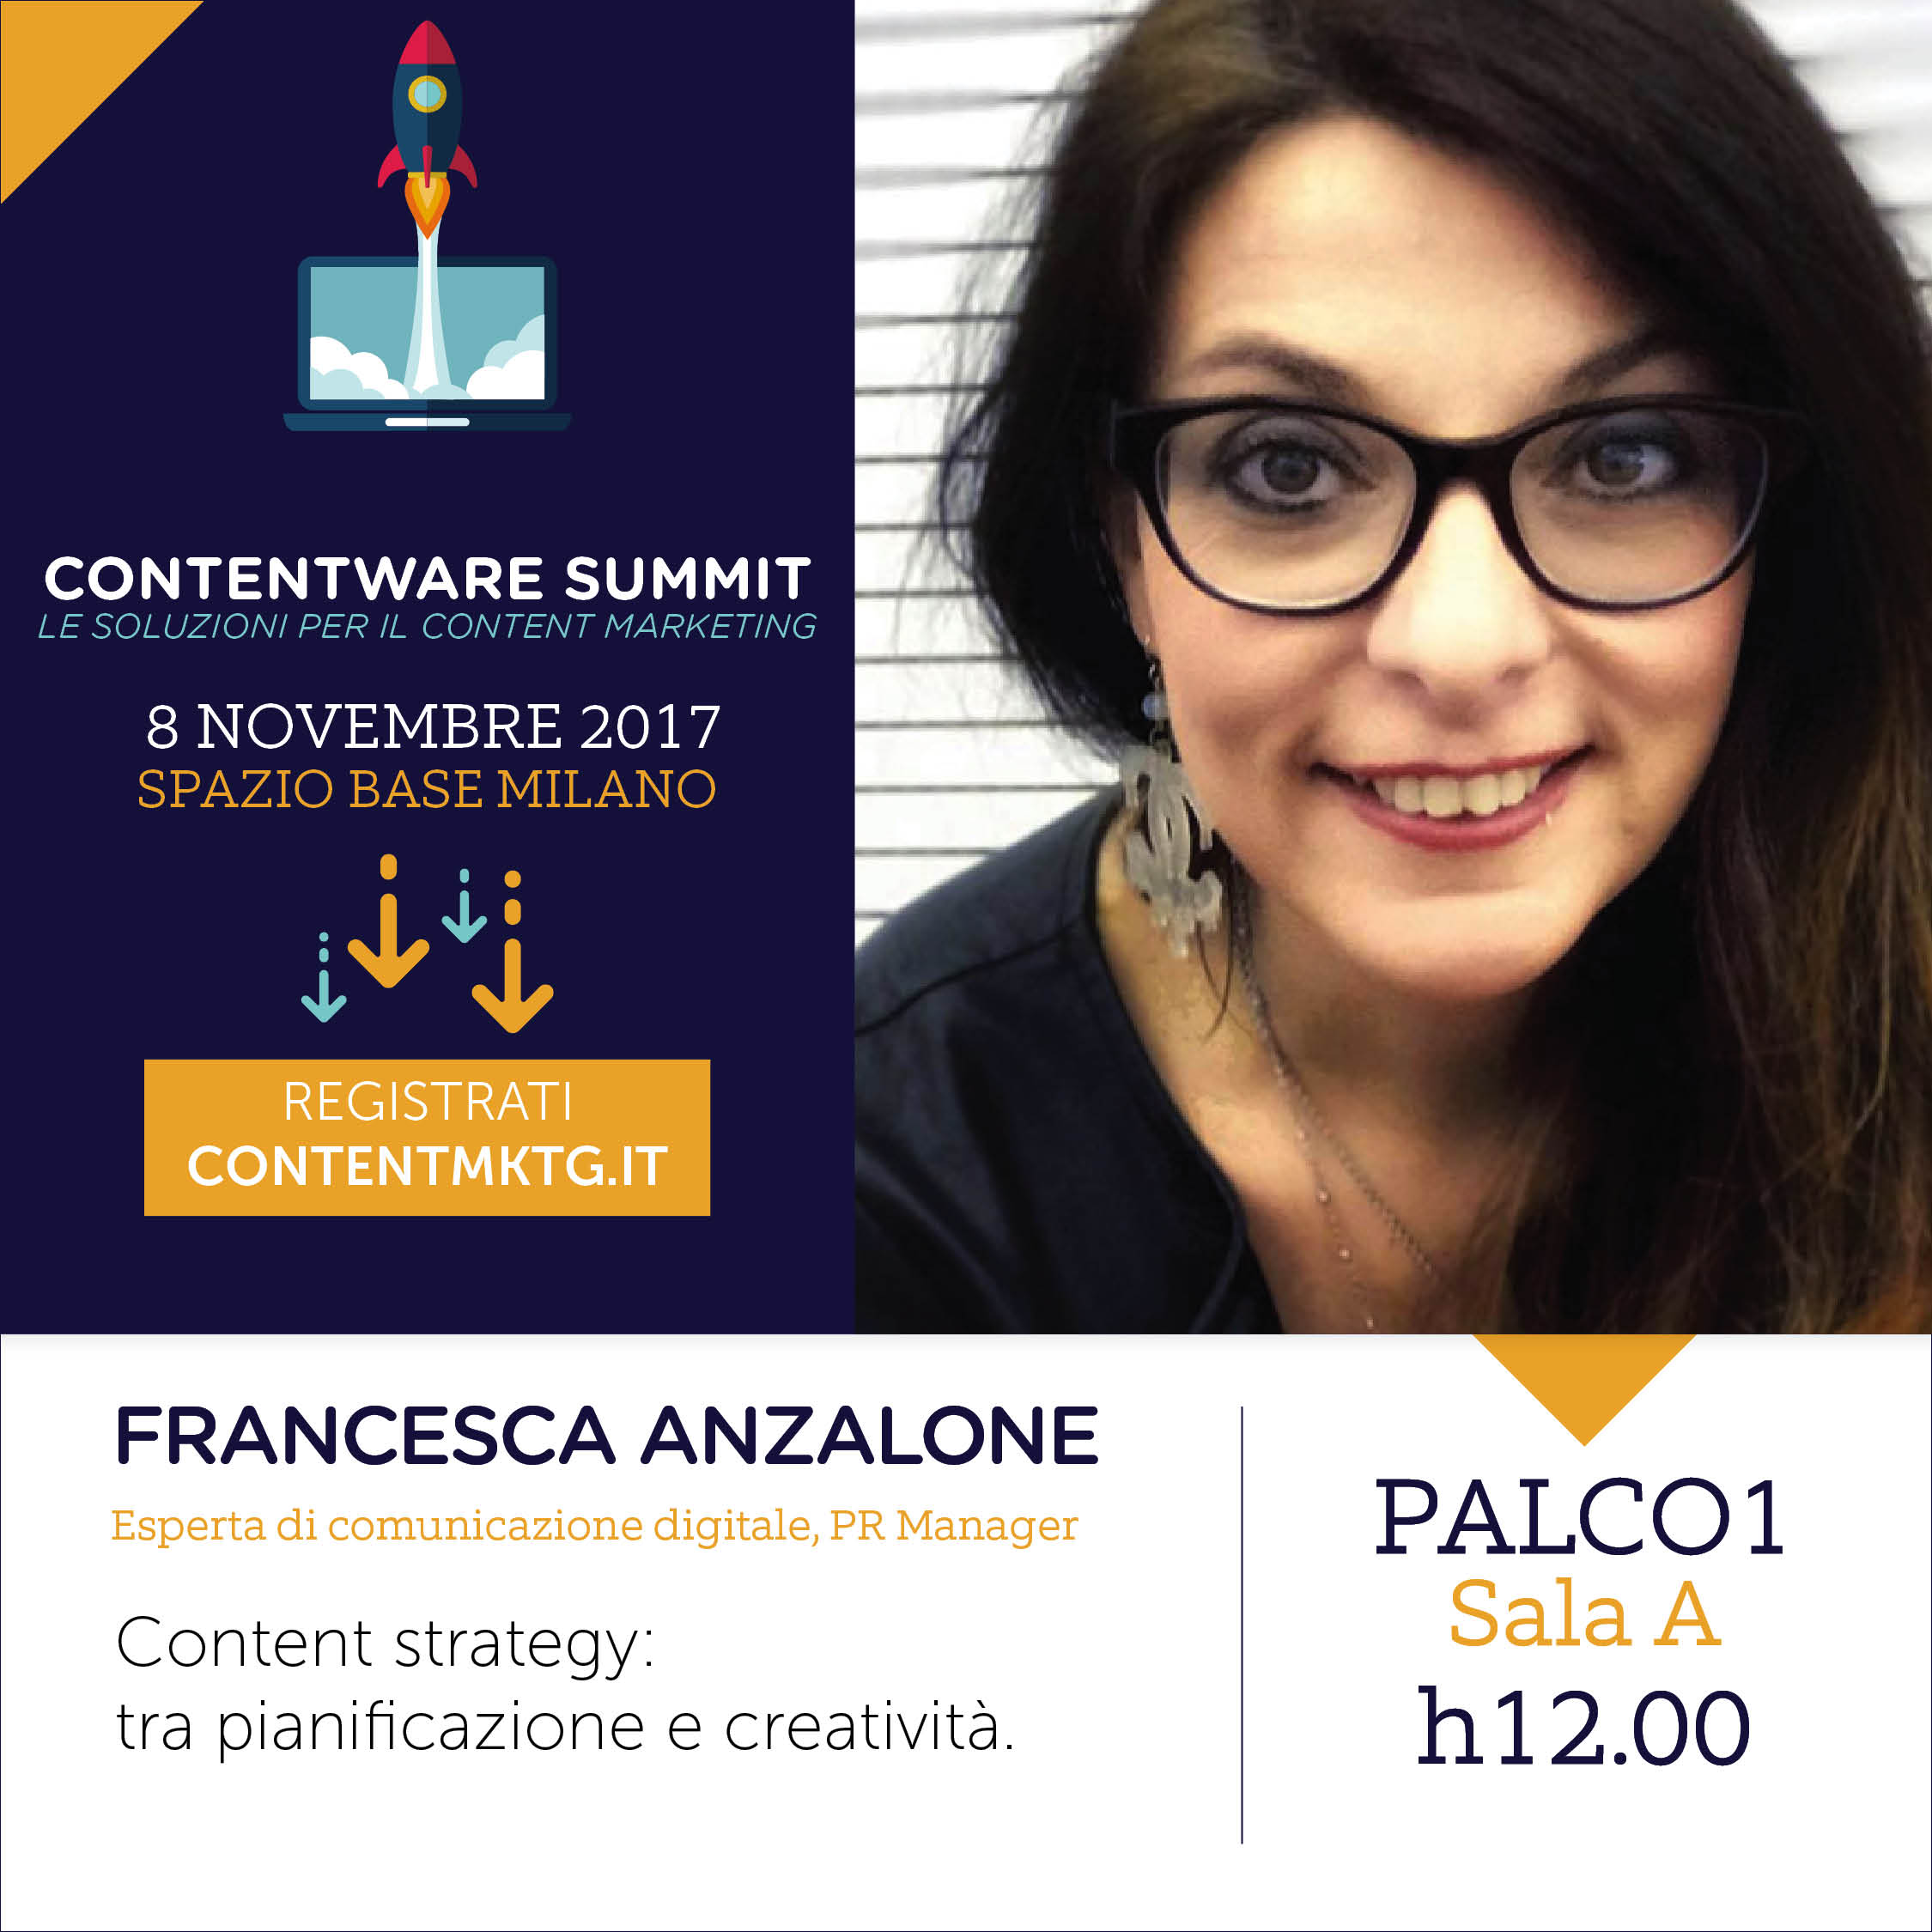 Contentare Summit 2017 - Francesca Anzalone, Digital PR